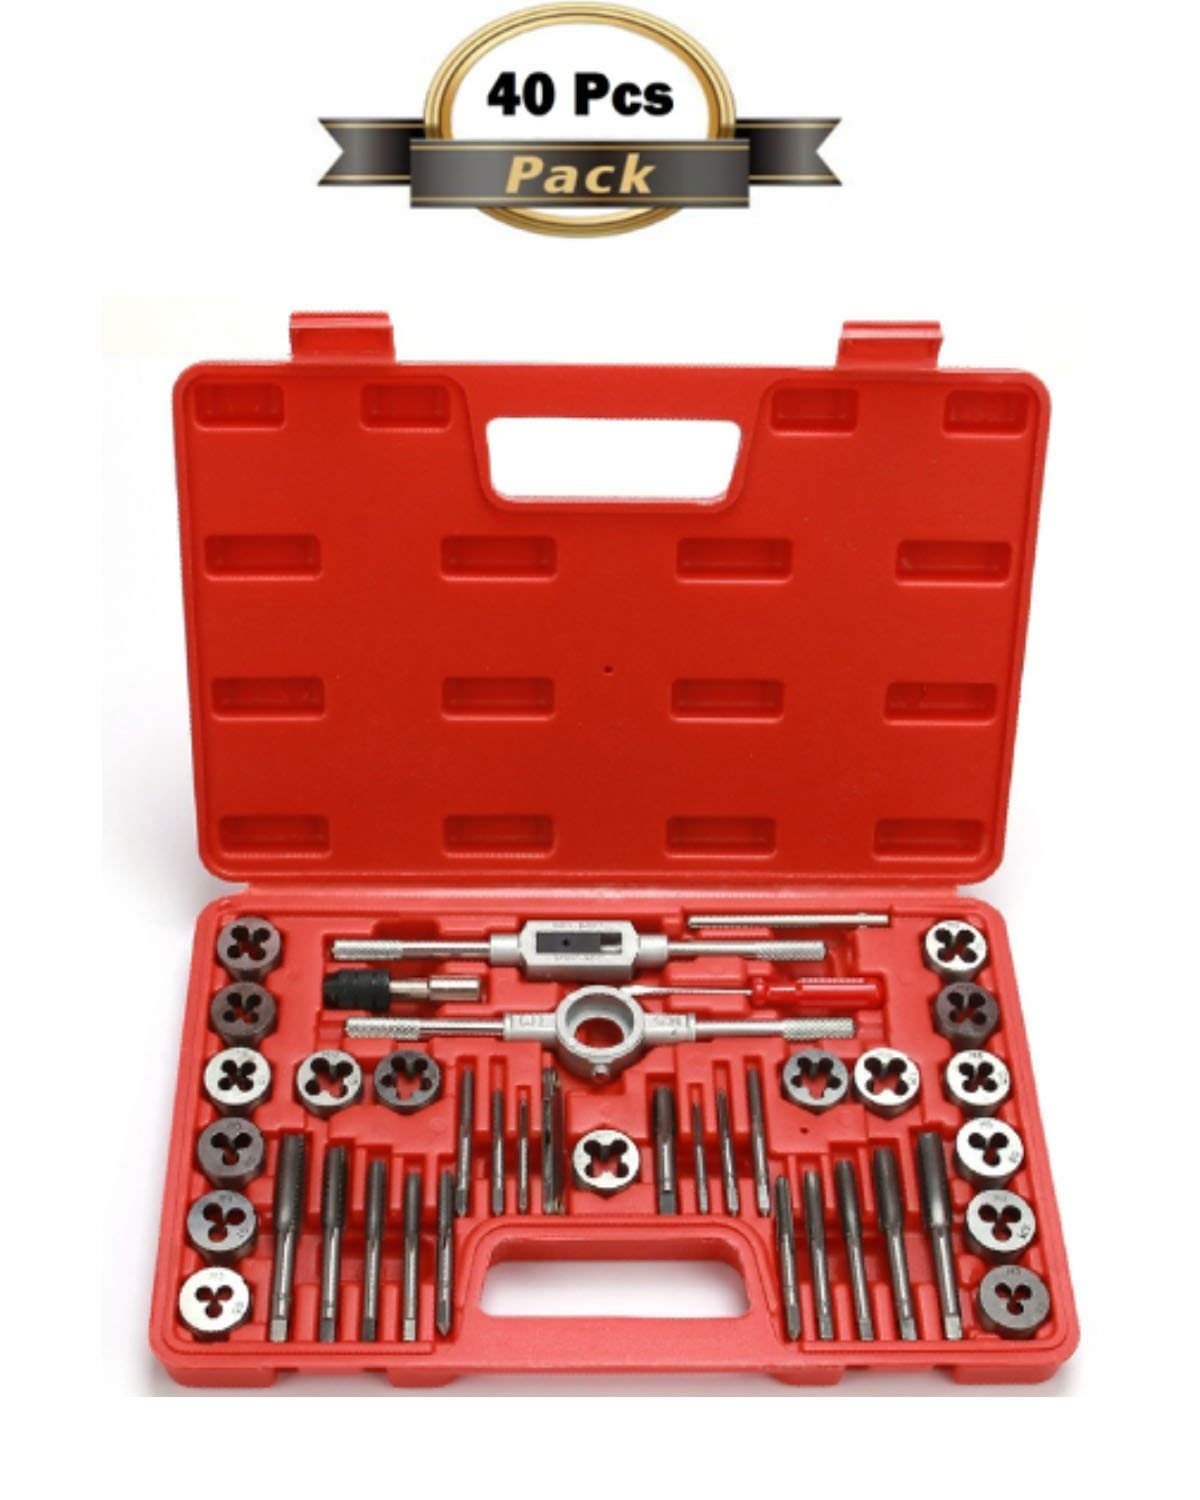 WC-40TDS, 40 Pieces Taps and Dies Set Metric Threading Tool Set Alloy Steel Taps and Dies Screw Thread Making Tool Bit Kit Set